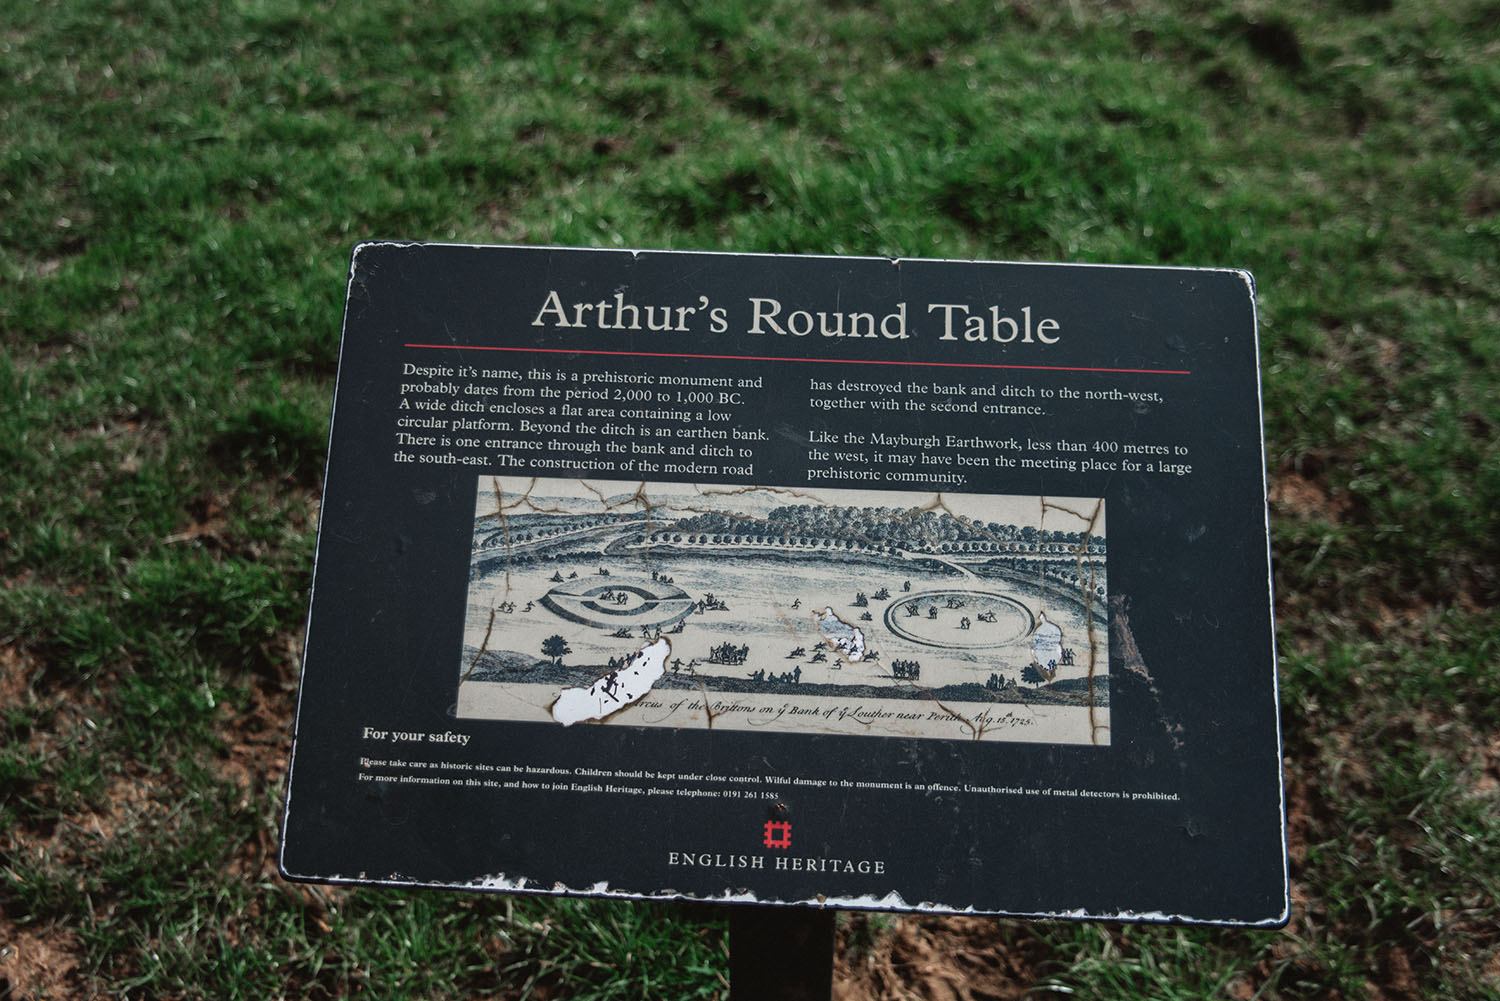 Arthur's Round Table